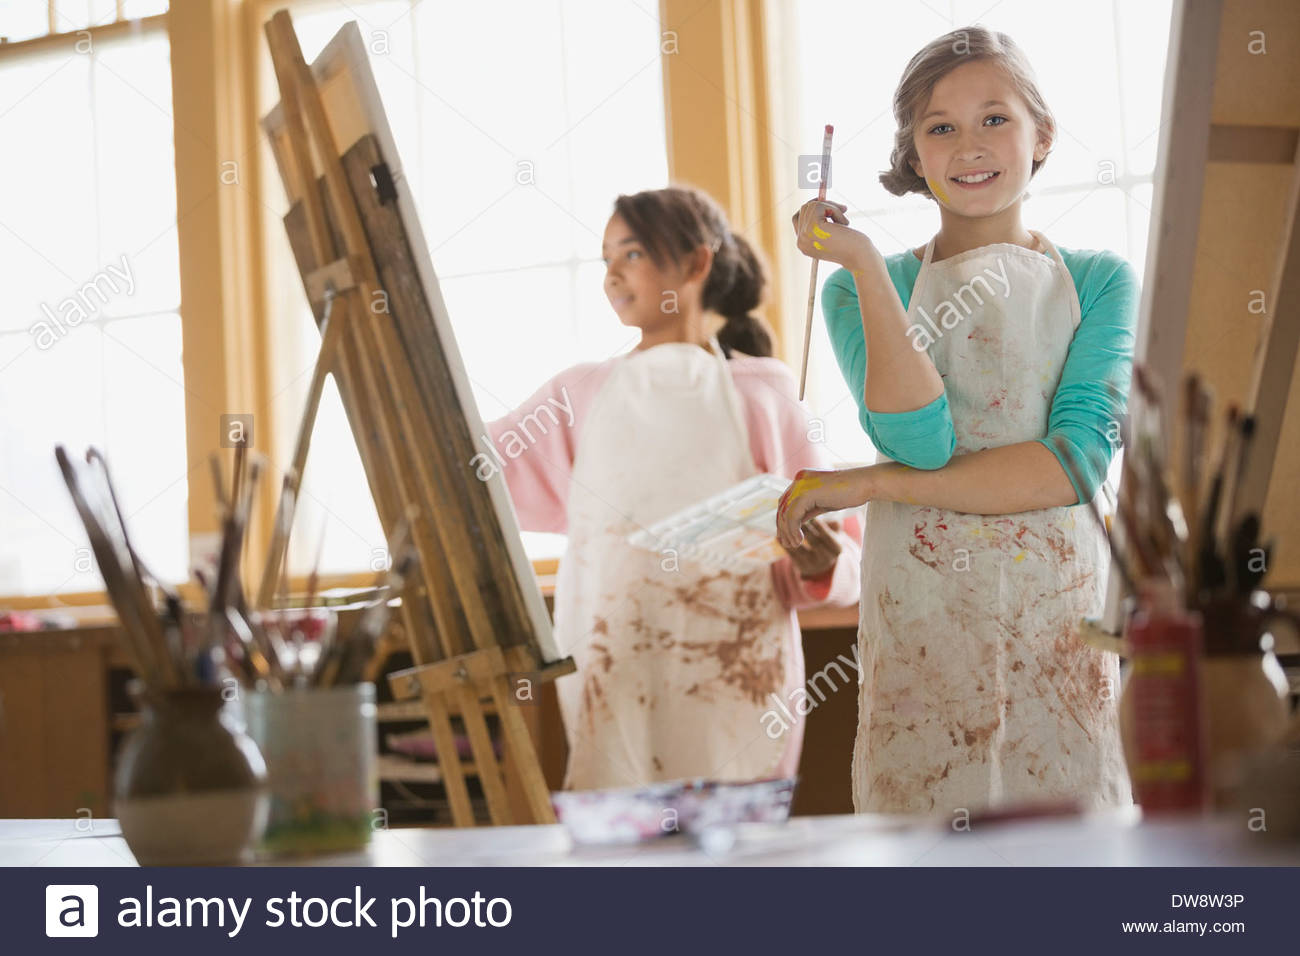 Portrait of confident girl painting in art class - Stock Image